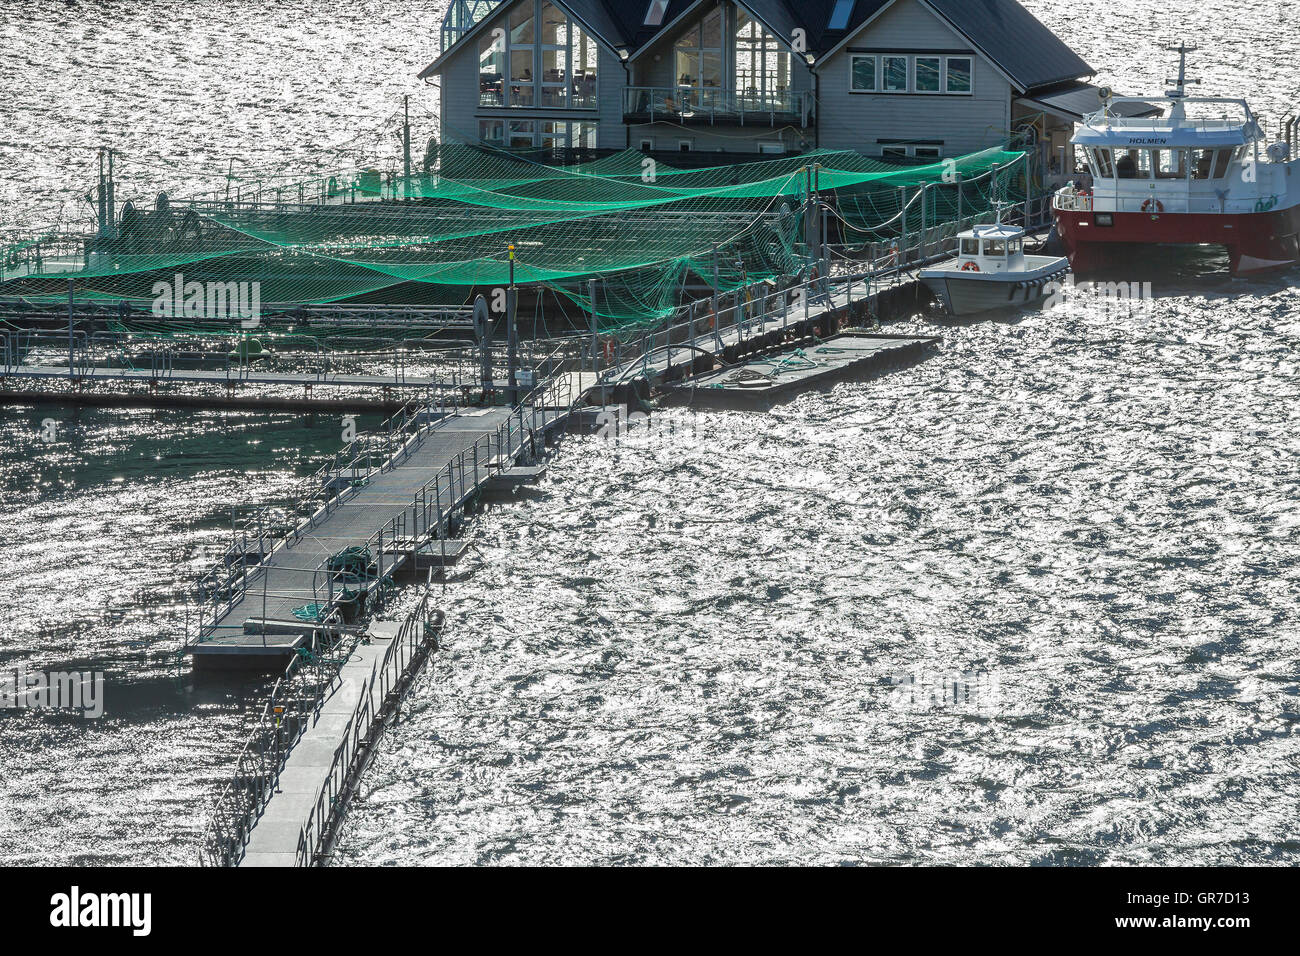 The Norwegian Aquaculture Is Often Based On Net Cages In The Open Sea Or In Bays And Is Mainly Used For Breeding - Stock Image